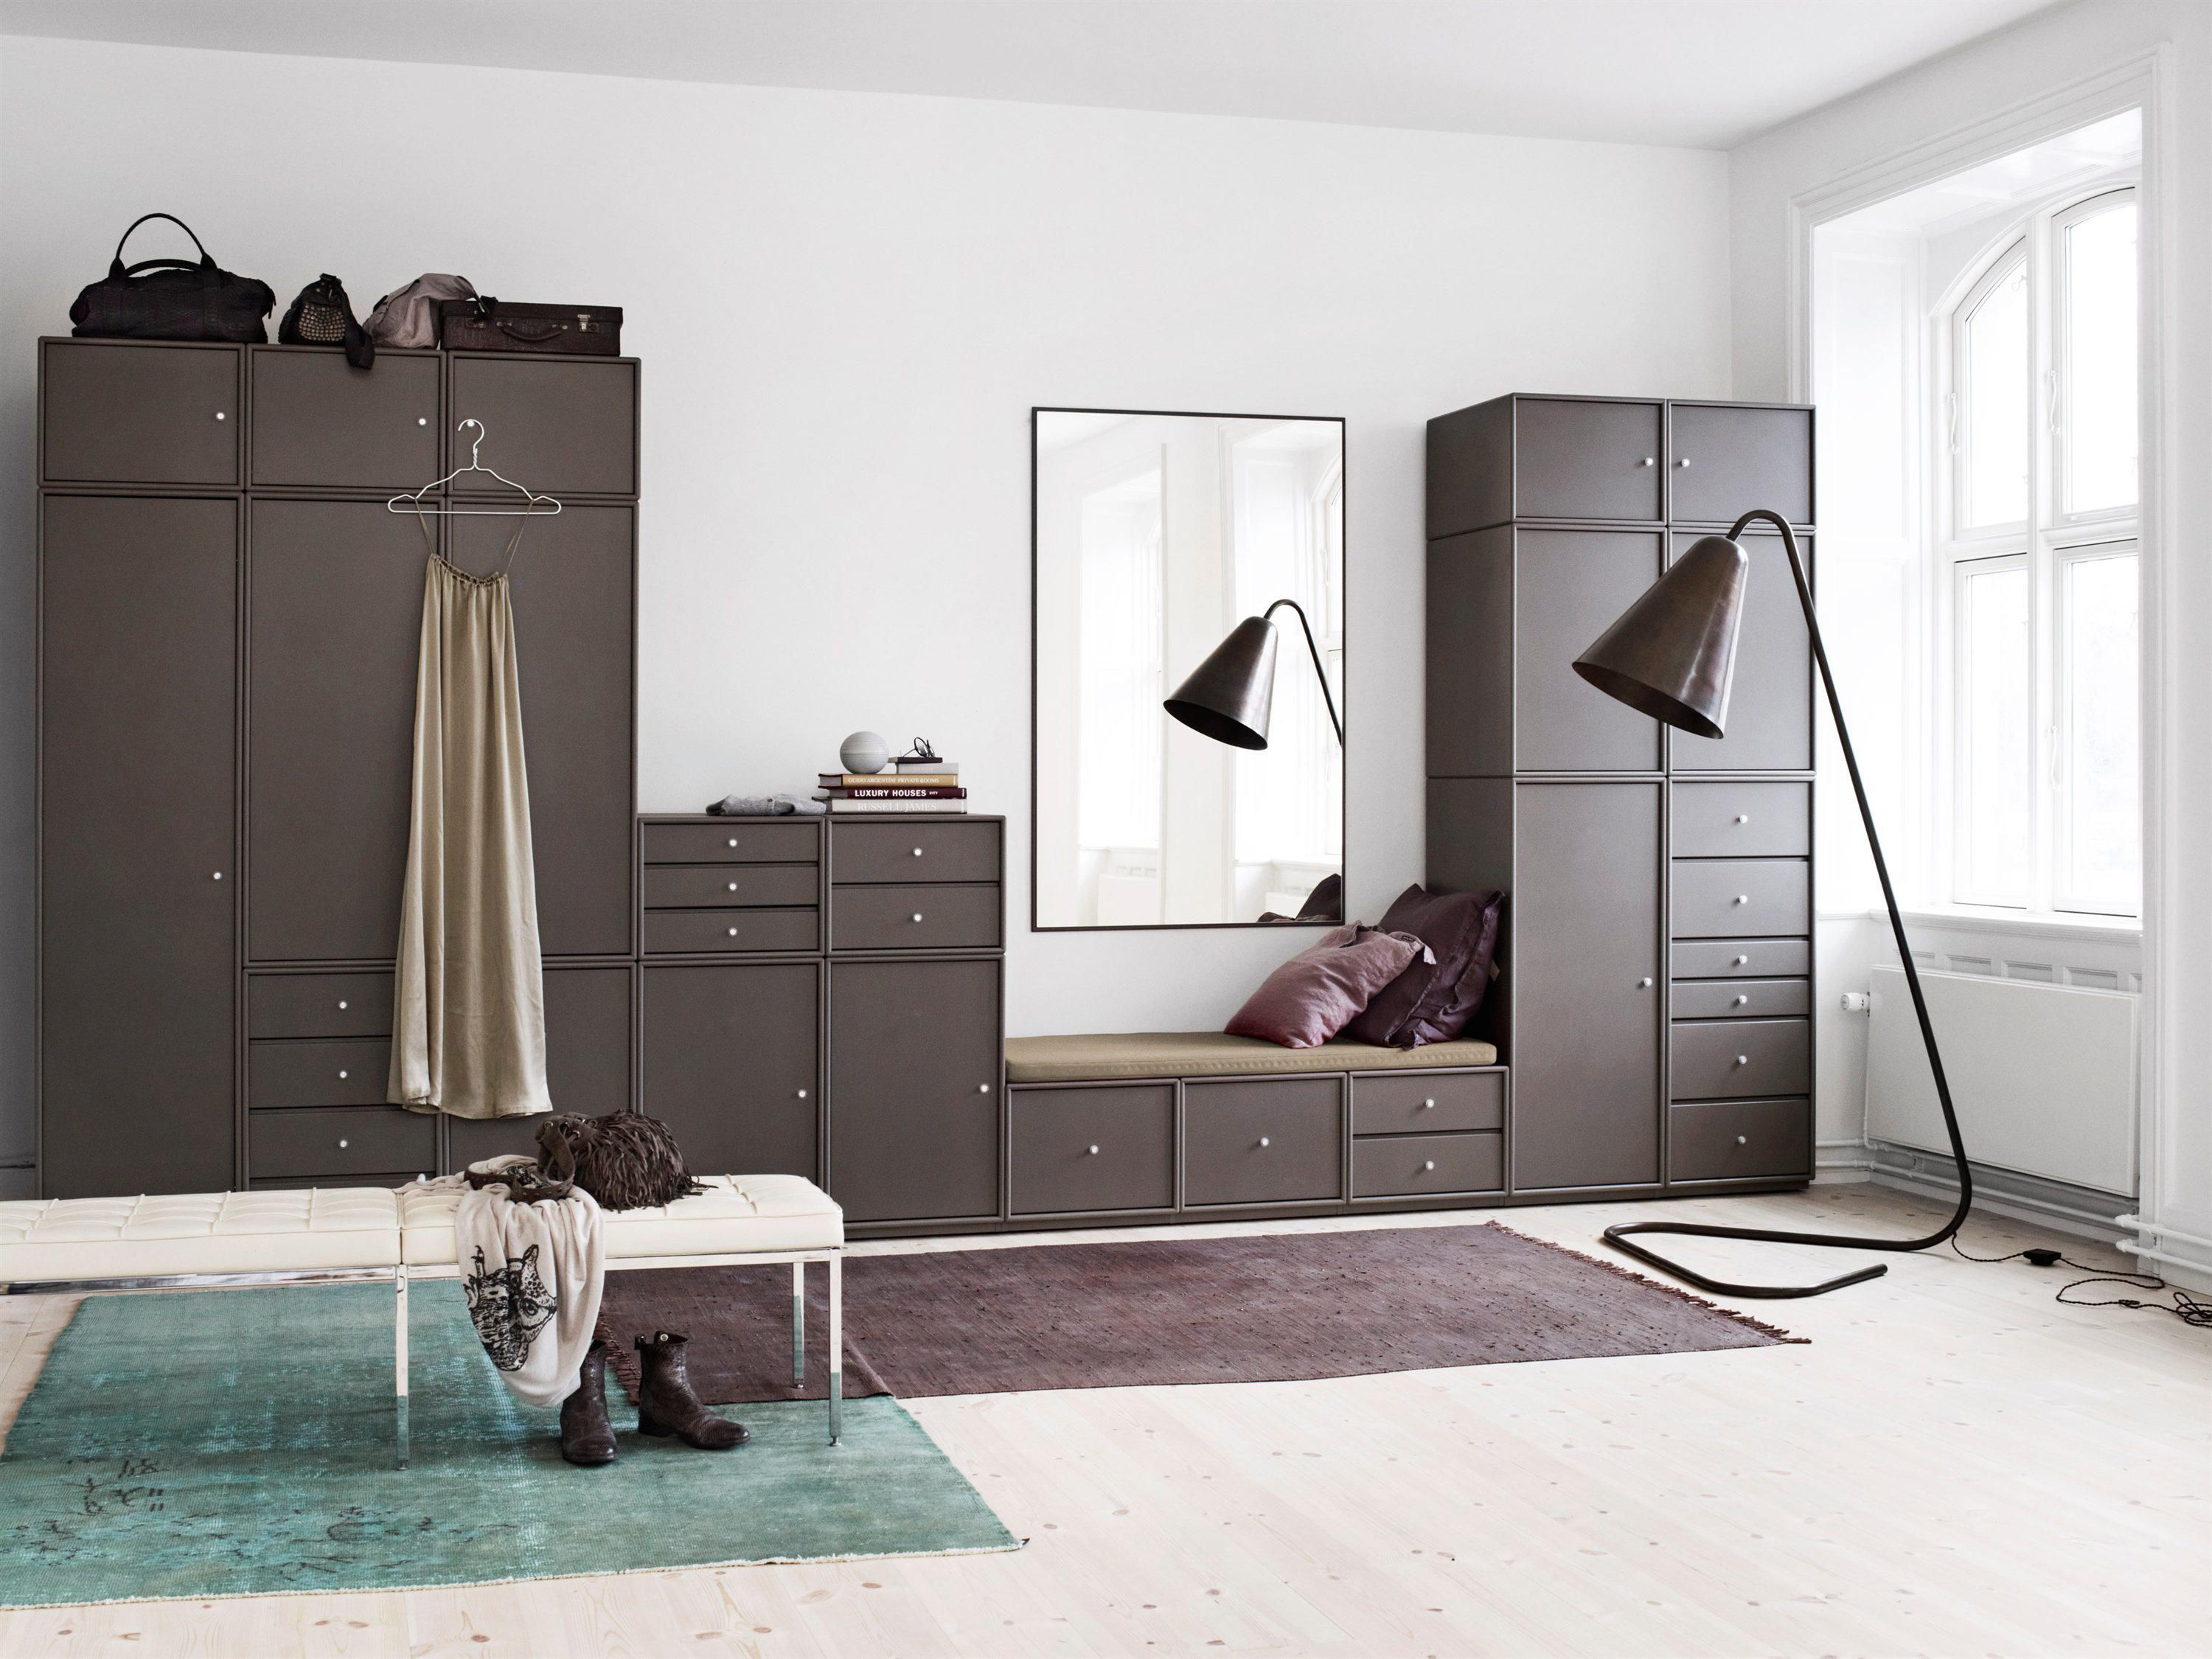 Montana Wardrobe Application Example Designer Cabinets From